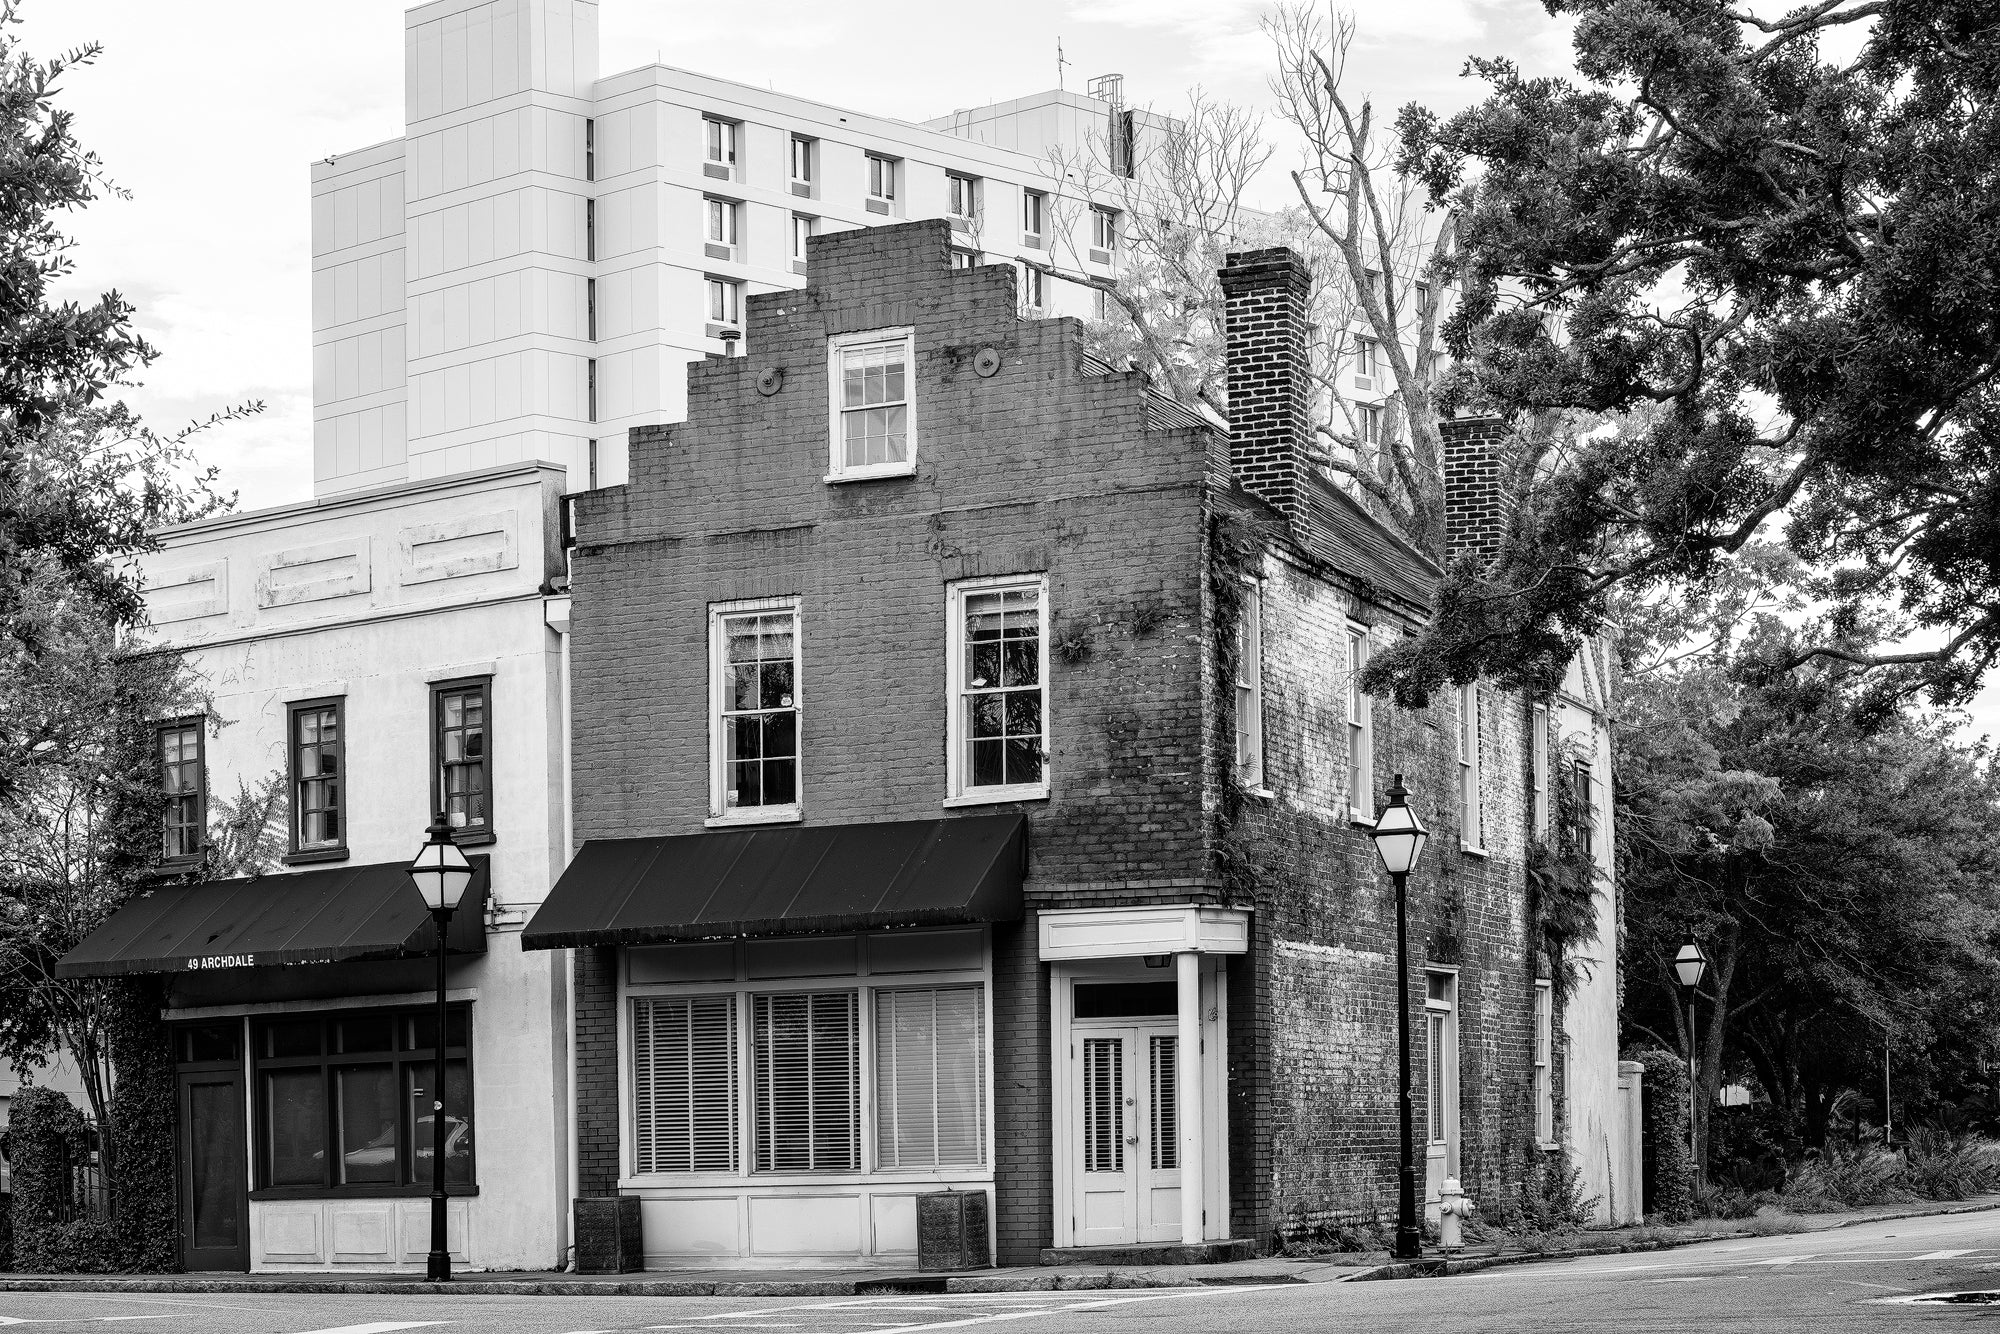 Charleston Archdale at Beaufain - Black and White Photograph by Keith Dotson. Click to buy a fine art print.